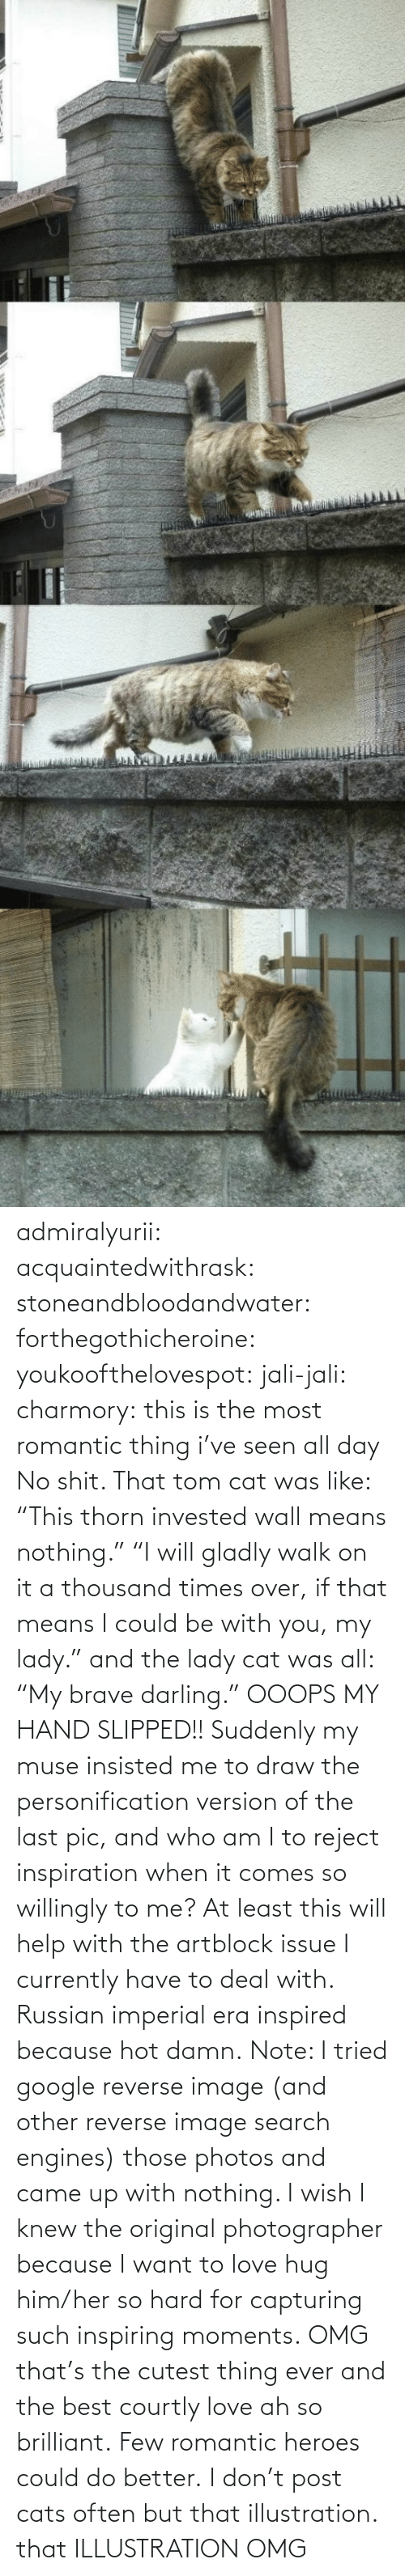 "Few: admiralyurii: acquaintedwithrask:  stoneandbloodandwater:  forthegothicheroine:  youkoofthelovespot:  jali-jali:  charmory:  this is the most romantic thing i've seen all day  No shit. That tom cat was like: ""This thorn invested wall means nothing."" ""I will gladly walk on it a thousand times over, if that means I could be with you, my lady."" and the lady cat was all: ""My brave darling."" OOOPS MY HAND SLIPPED!!  Suddenly my muse insisted me to draw the personification version of the last pic, and who am I to reject inspiration when it comes so willingly to me? At least this will help with the artblock issue I currently have to deal with. Russian imperial era inspired because hot damn. Note: I tried google reverse image (and other reverse image search engines) those photos and came up with nothing. I wish I knew the original photographer because I want to love hug him/her so hard for capturing such inspiring moments.  OMG that's the cutest thing ever and the best courtly love ah so brilliant.  Few romantic heroes could do better.  I don't post cats often but that illustration.  that ILLUSTRATION    OMG"